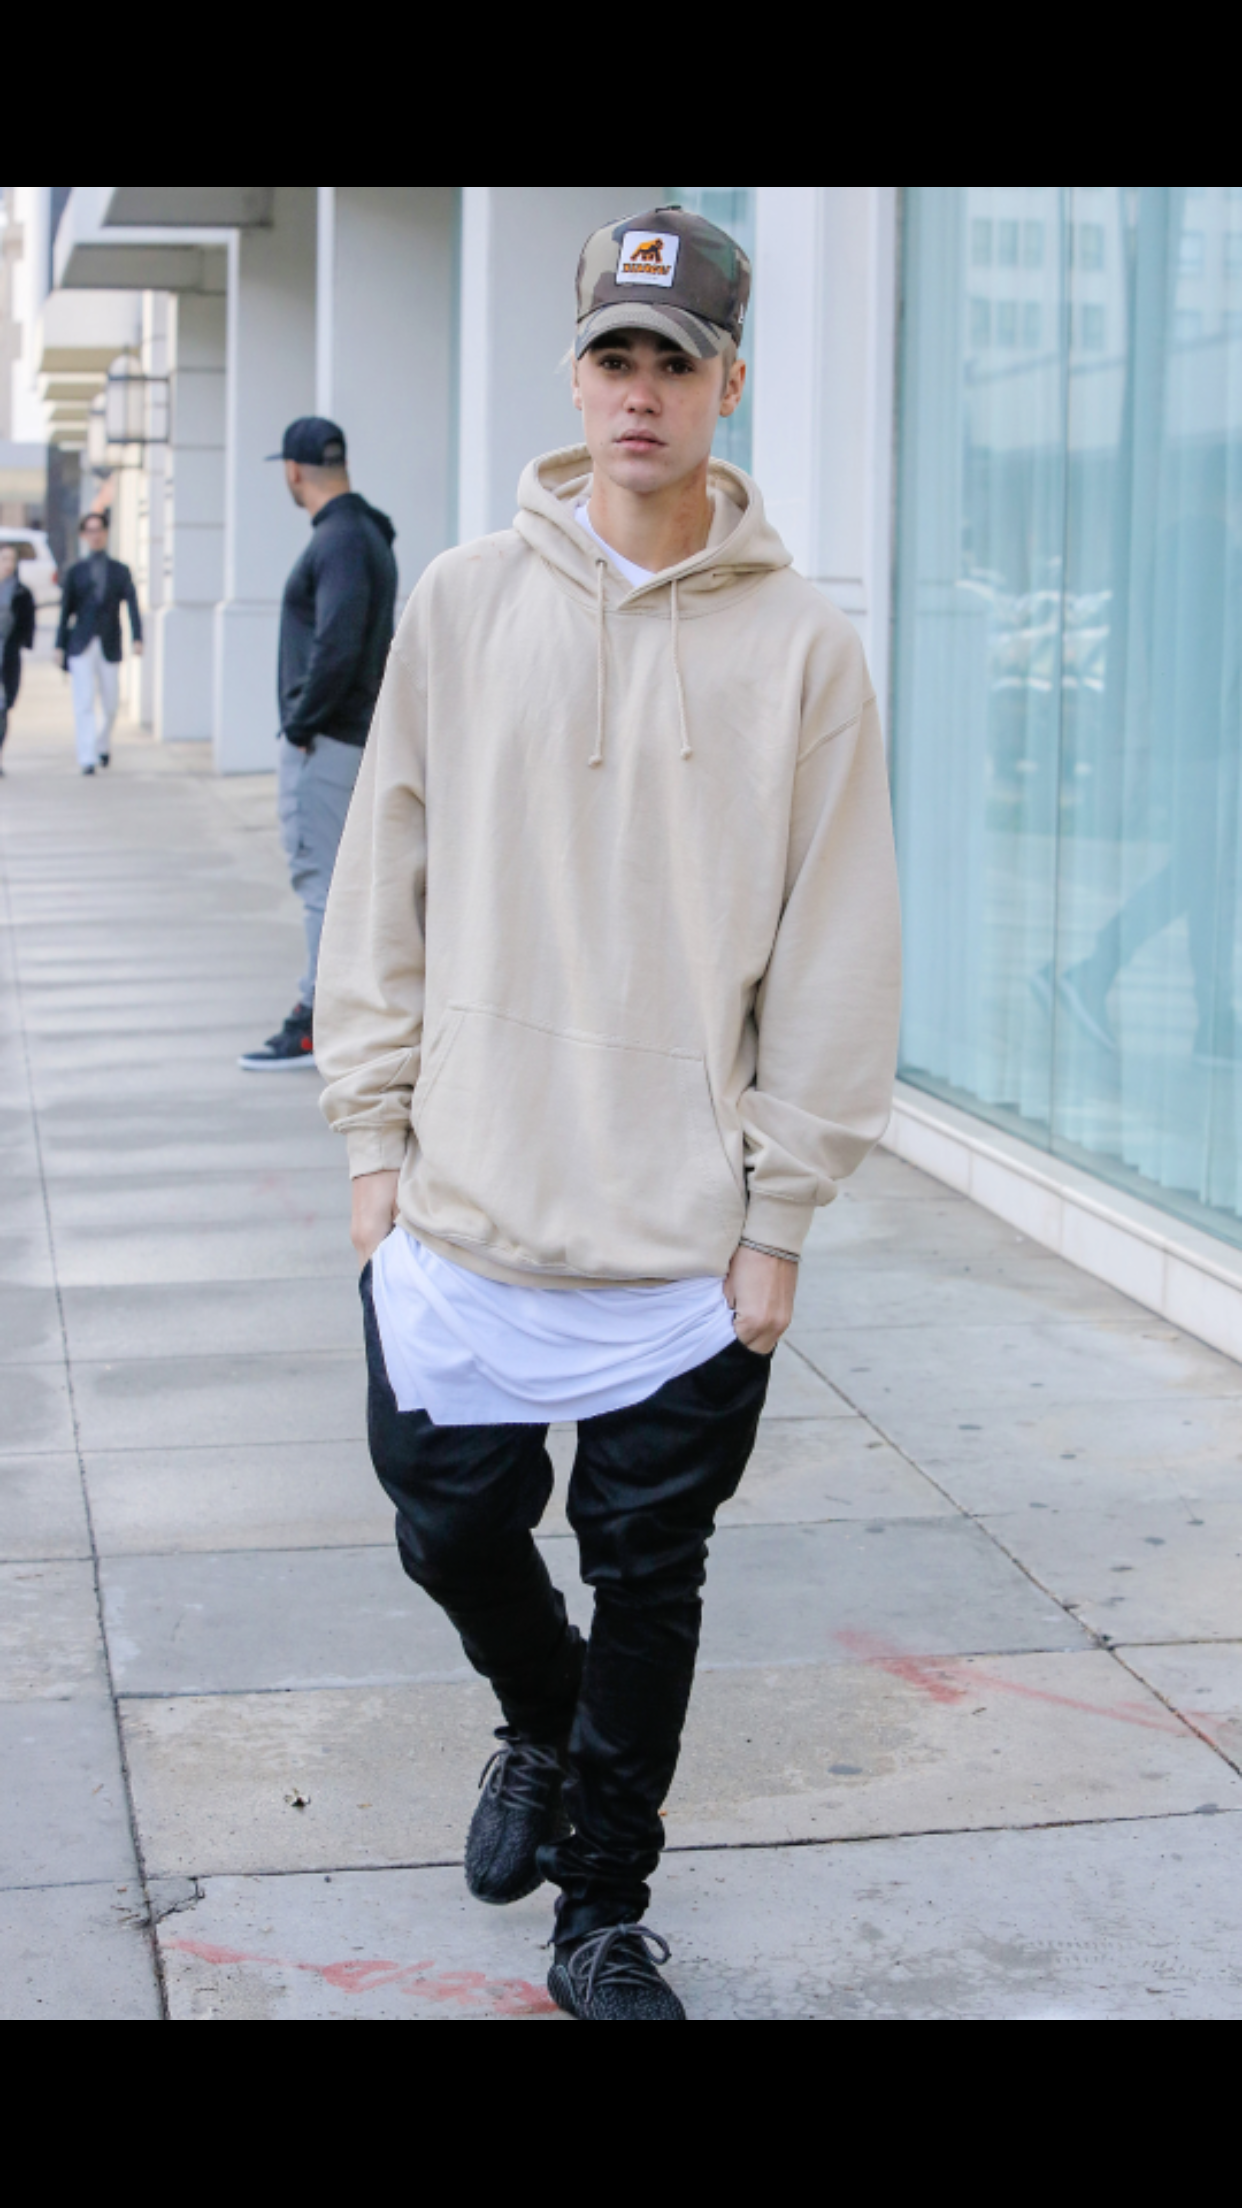 Bieber Sporting Pirate Black Yeezy 350 Boosts | Menu0026#39;s Streetwear Fashion | Pinterest | Yeezy 350 ...